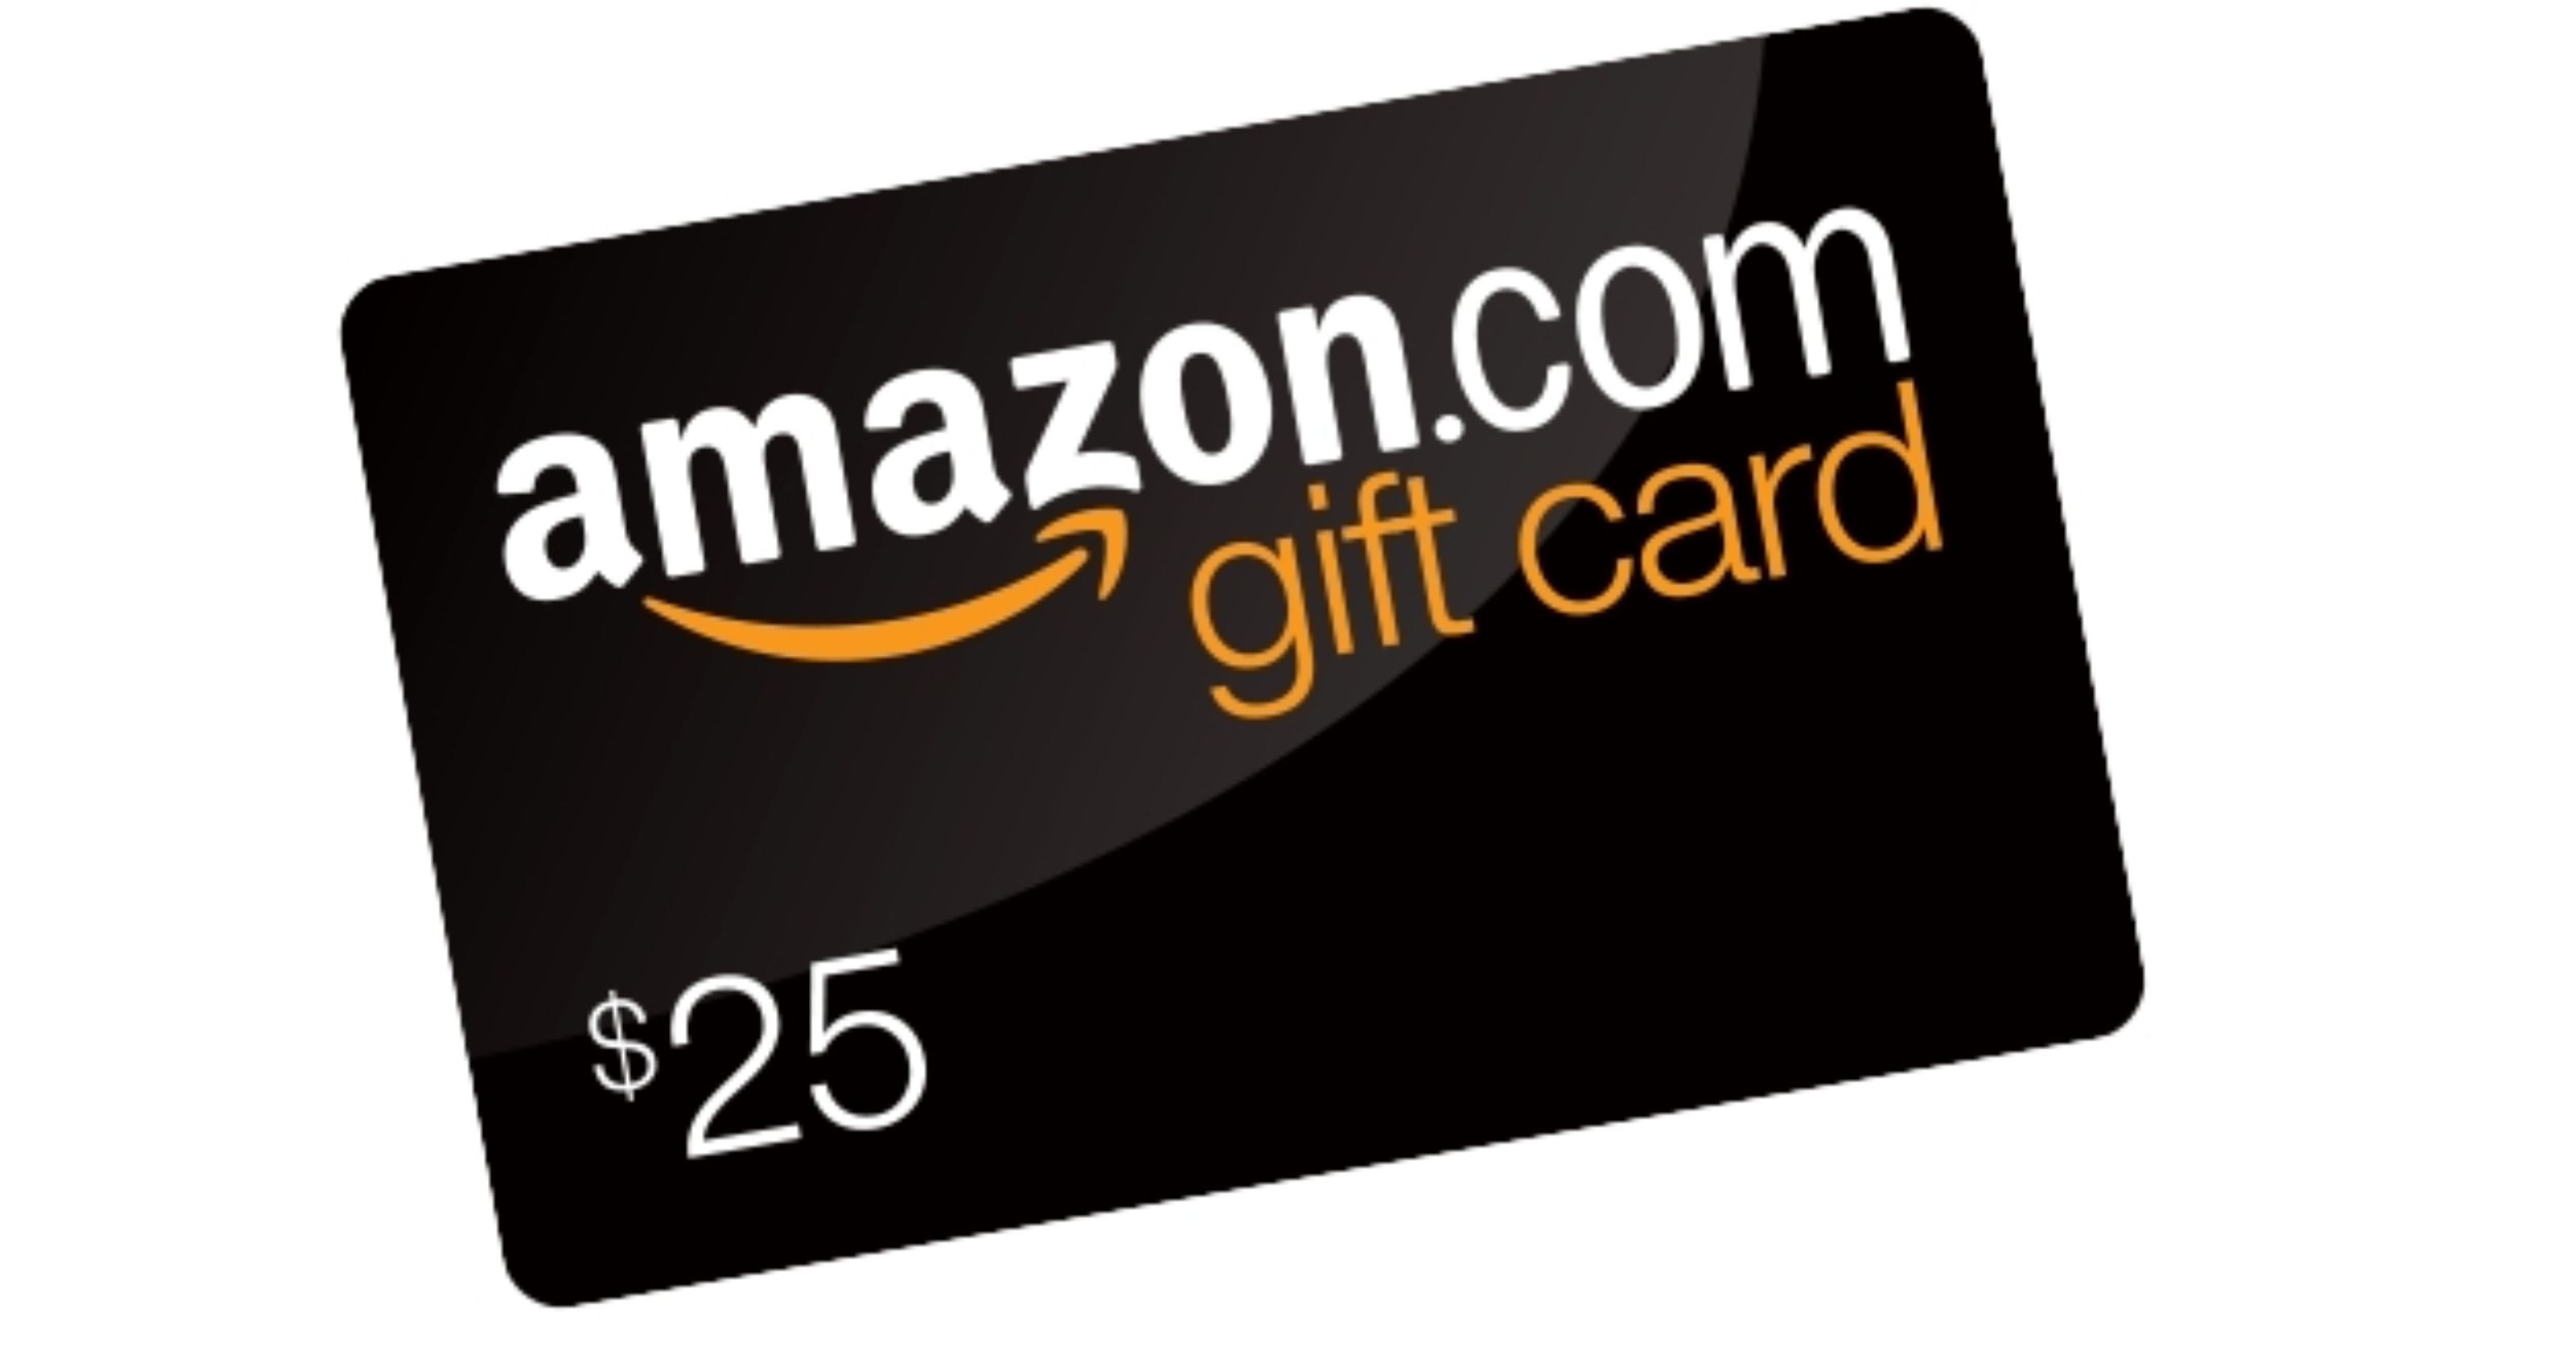 what is amazon gift card used for buy 25 in amazon gift cards get 5 credit southern savers 4990